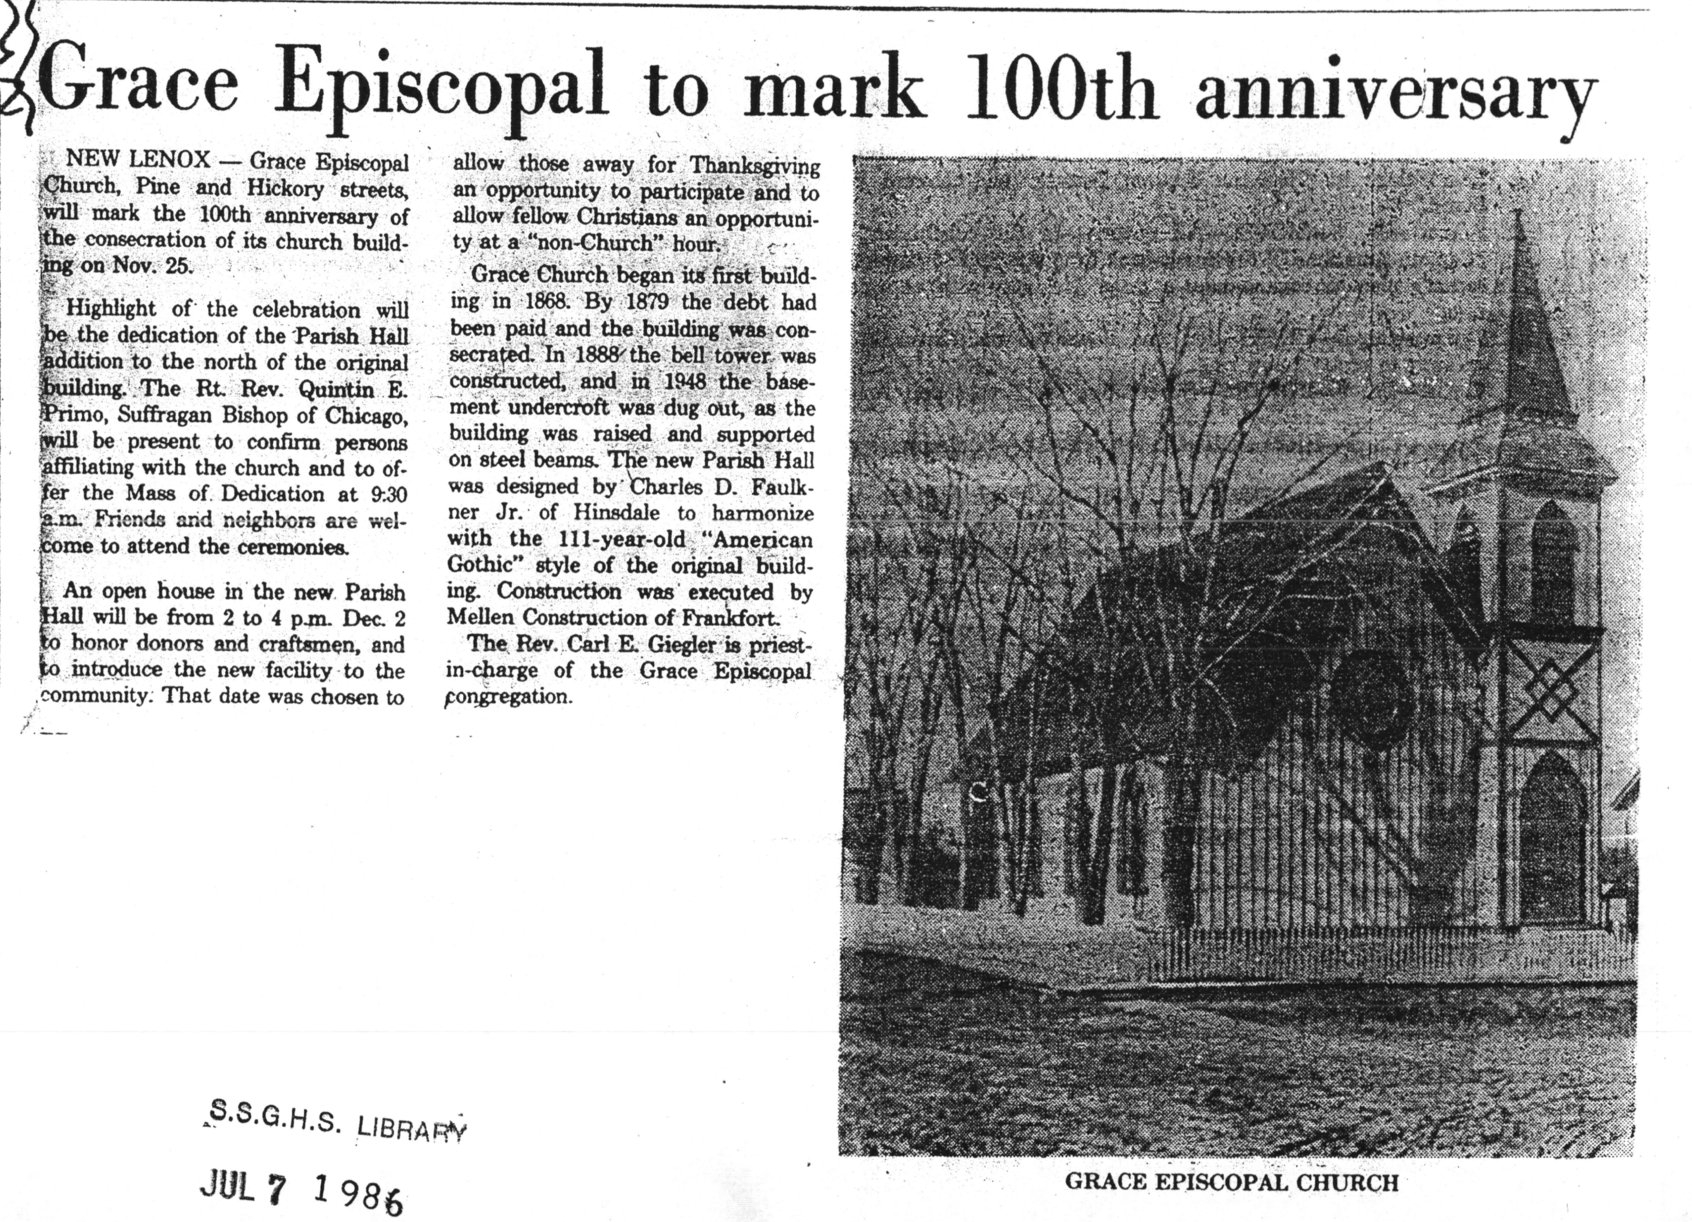 The Joliet Herald's article from November 1979, describing a celebration of the 100th anniversary of the building's consecration (November 25, 1879)